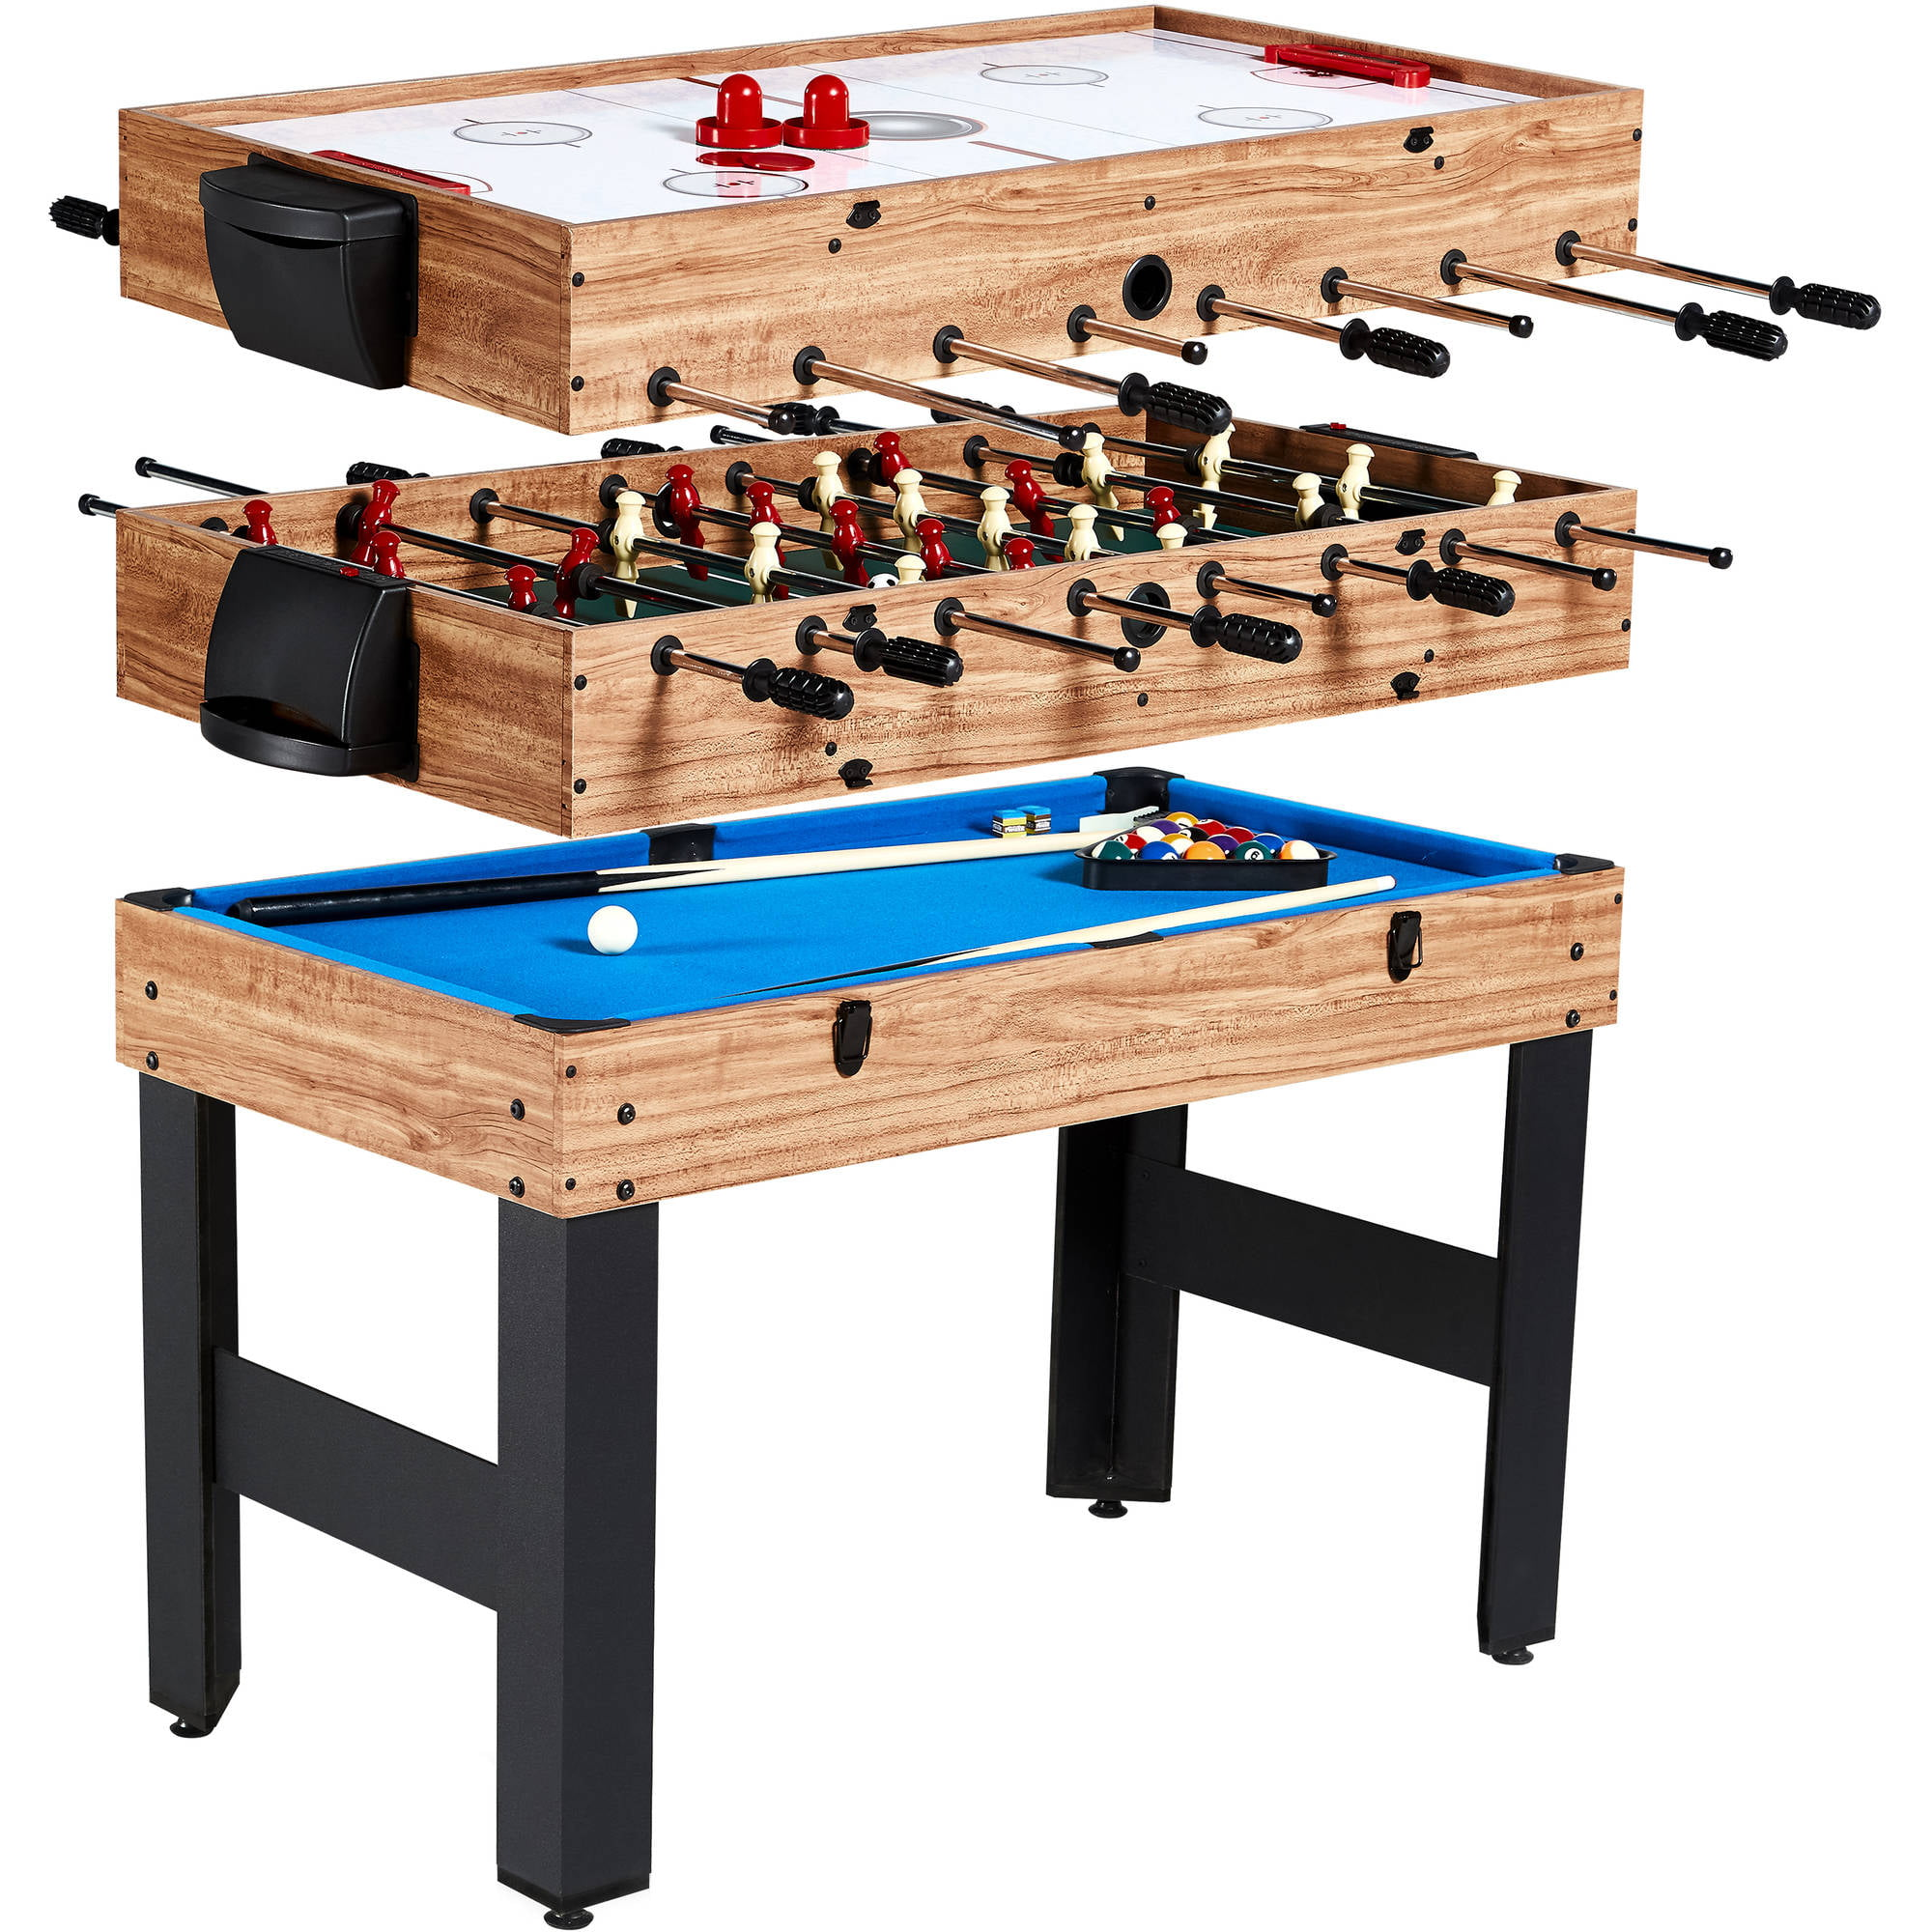 Attirant MD Sports 48 Inch 3 In 1 Combo Game Table, 3 Games With Billiards, Hockey  And Foosball   Walmart.com